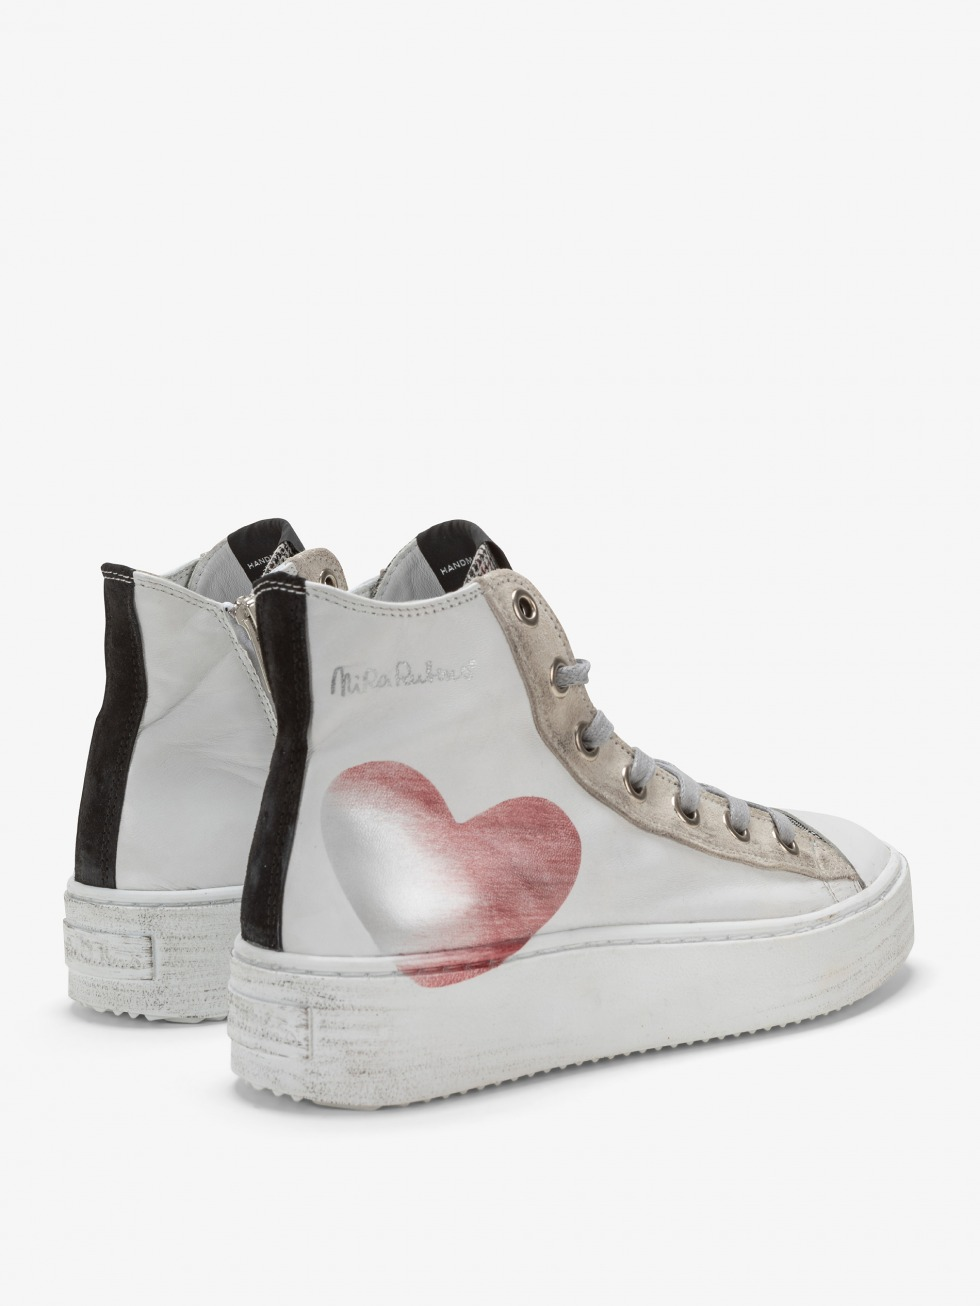 Long Island Sneakers - Prince of Galles Heart